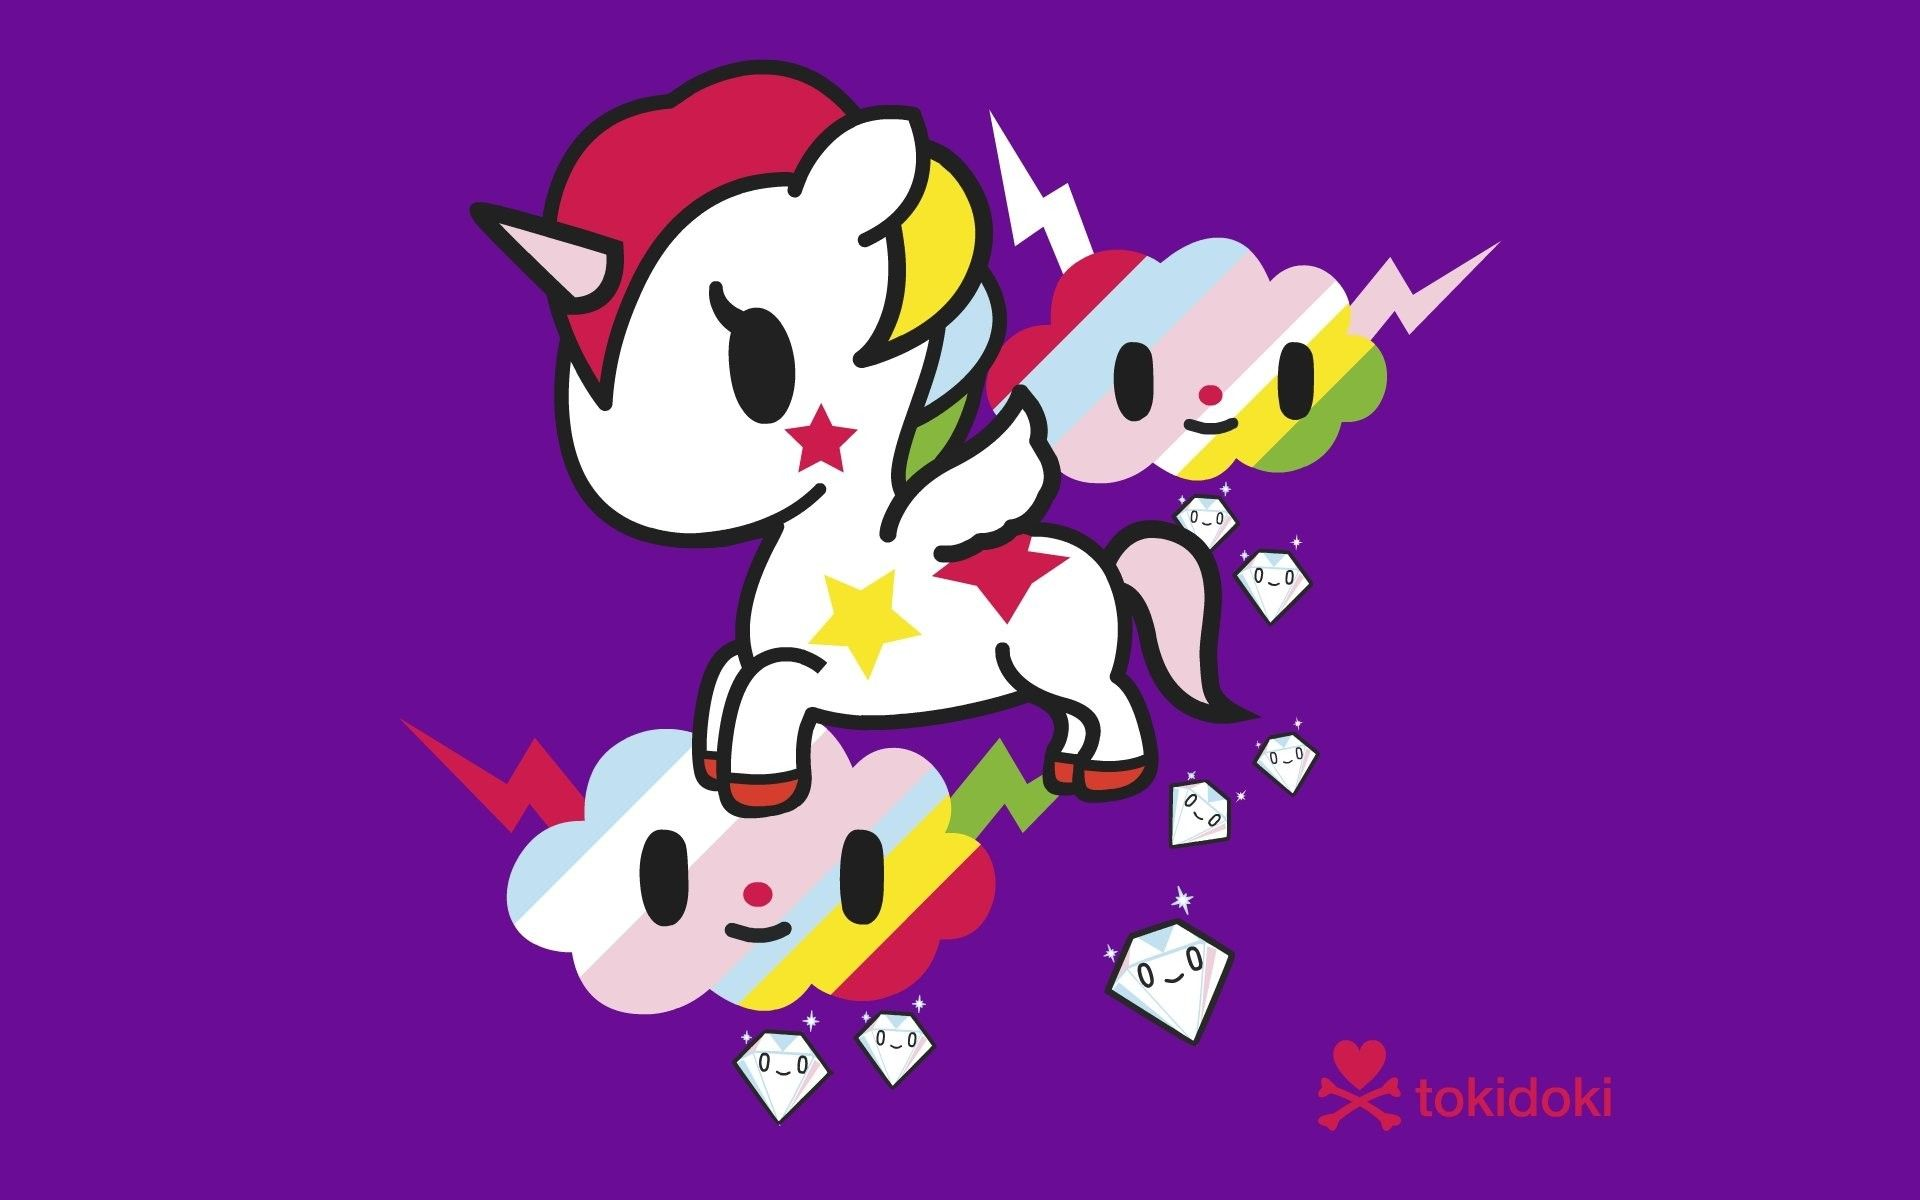 1920x1200 Wallpaper: Tokidoki Wallpaper. Tokidoki Wallpaper